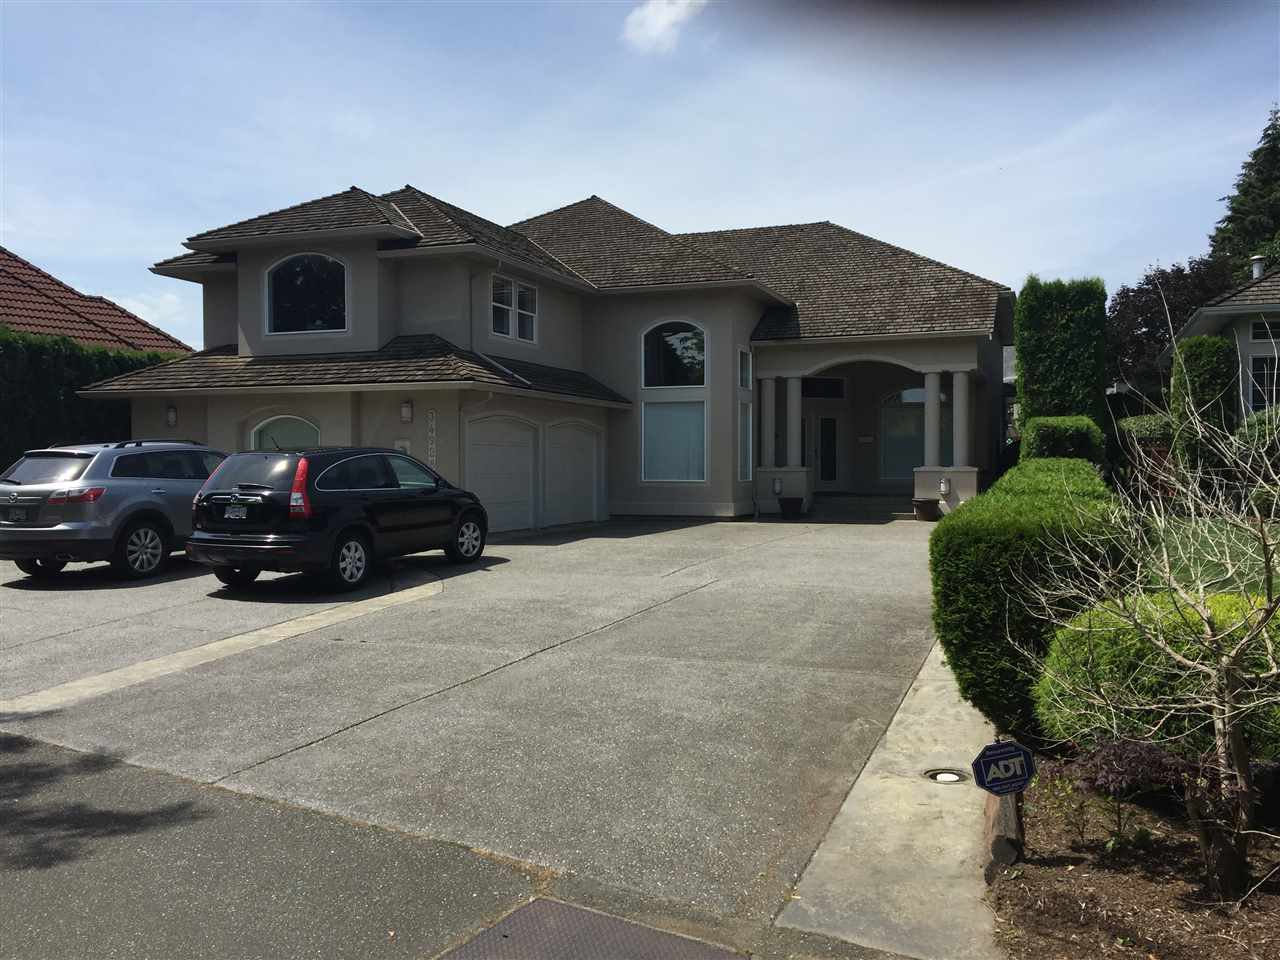 """Main Photo: 34928 EVERSON Place in Abbotsford: Abbotsford East House for sale in """"Everett Estates"""" : MLS®# R2078458"""